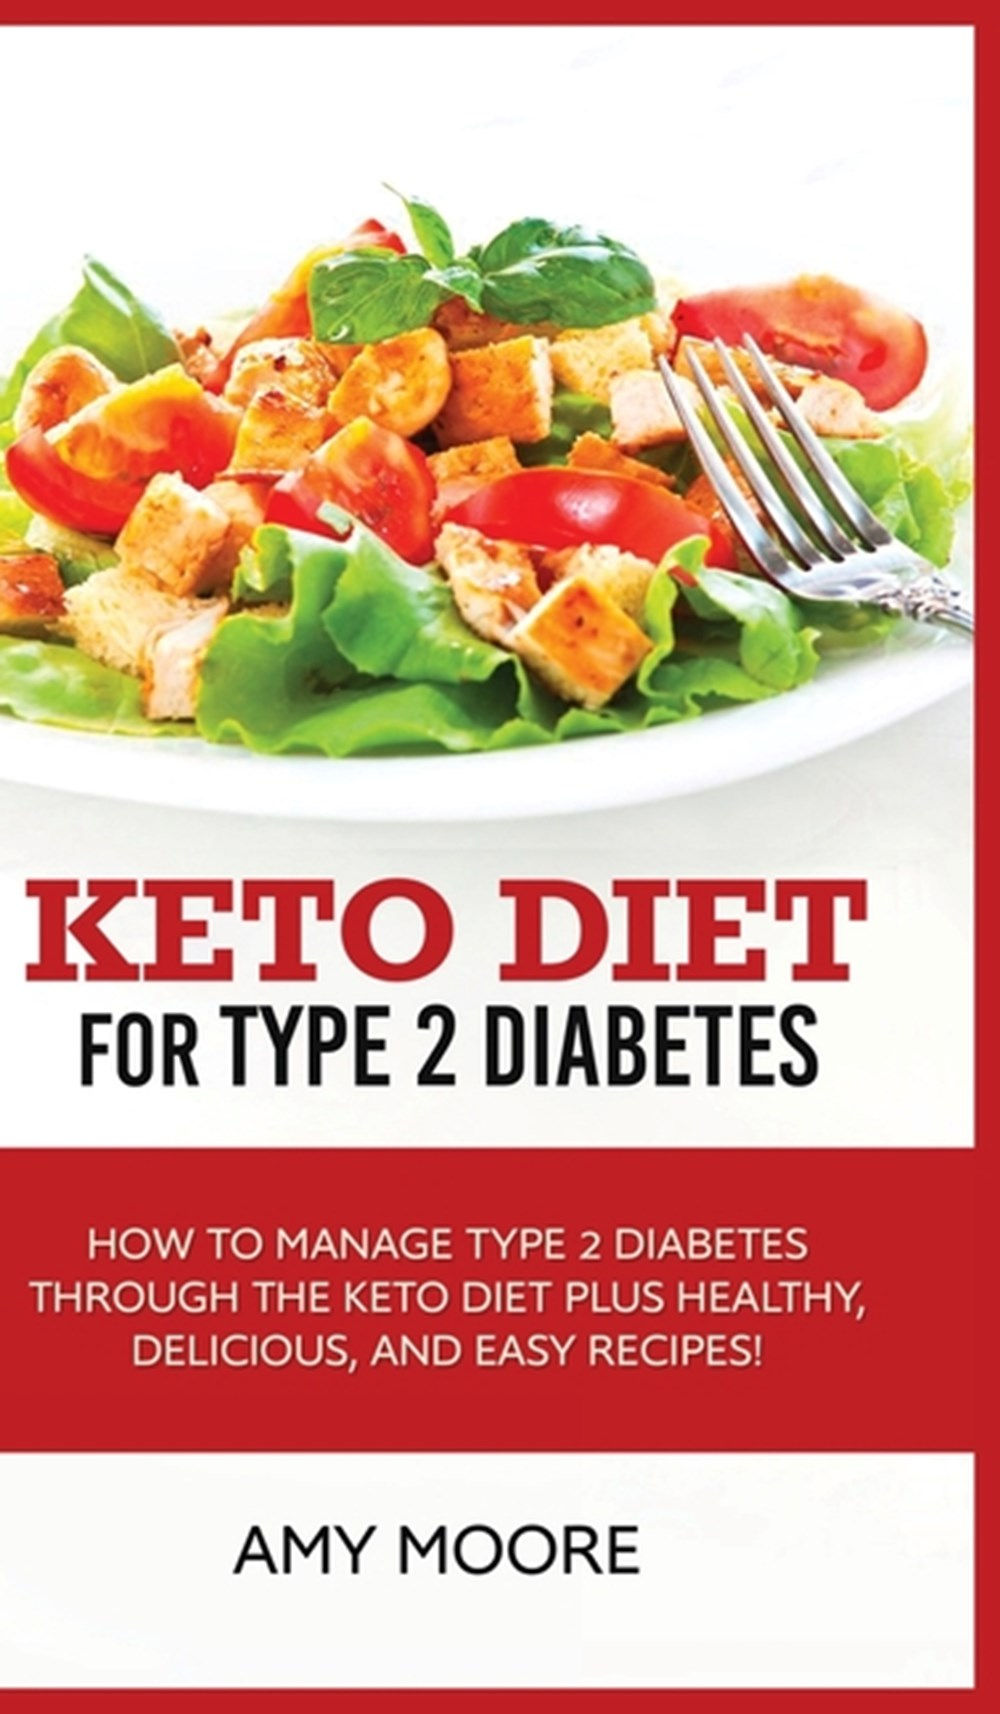 Keto Diet for Type 2 Diabetes How to Manage Type 2 Diabetes Through the Keto Diet Plus Healthy, Deli